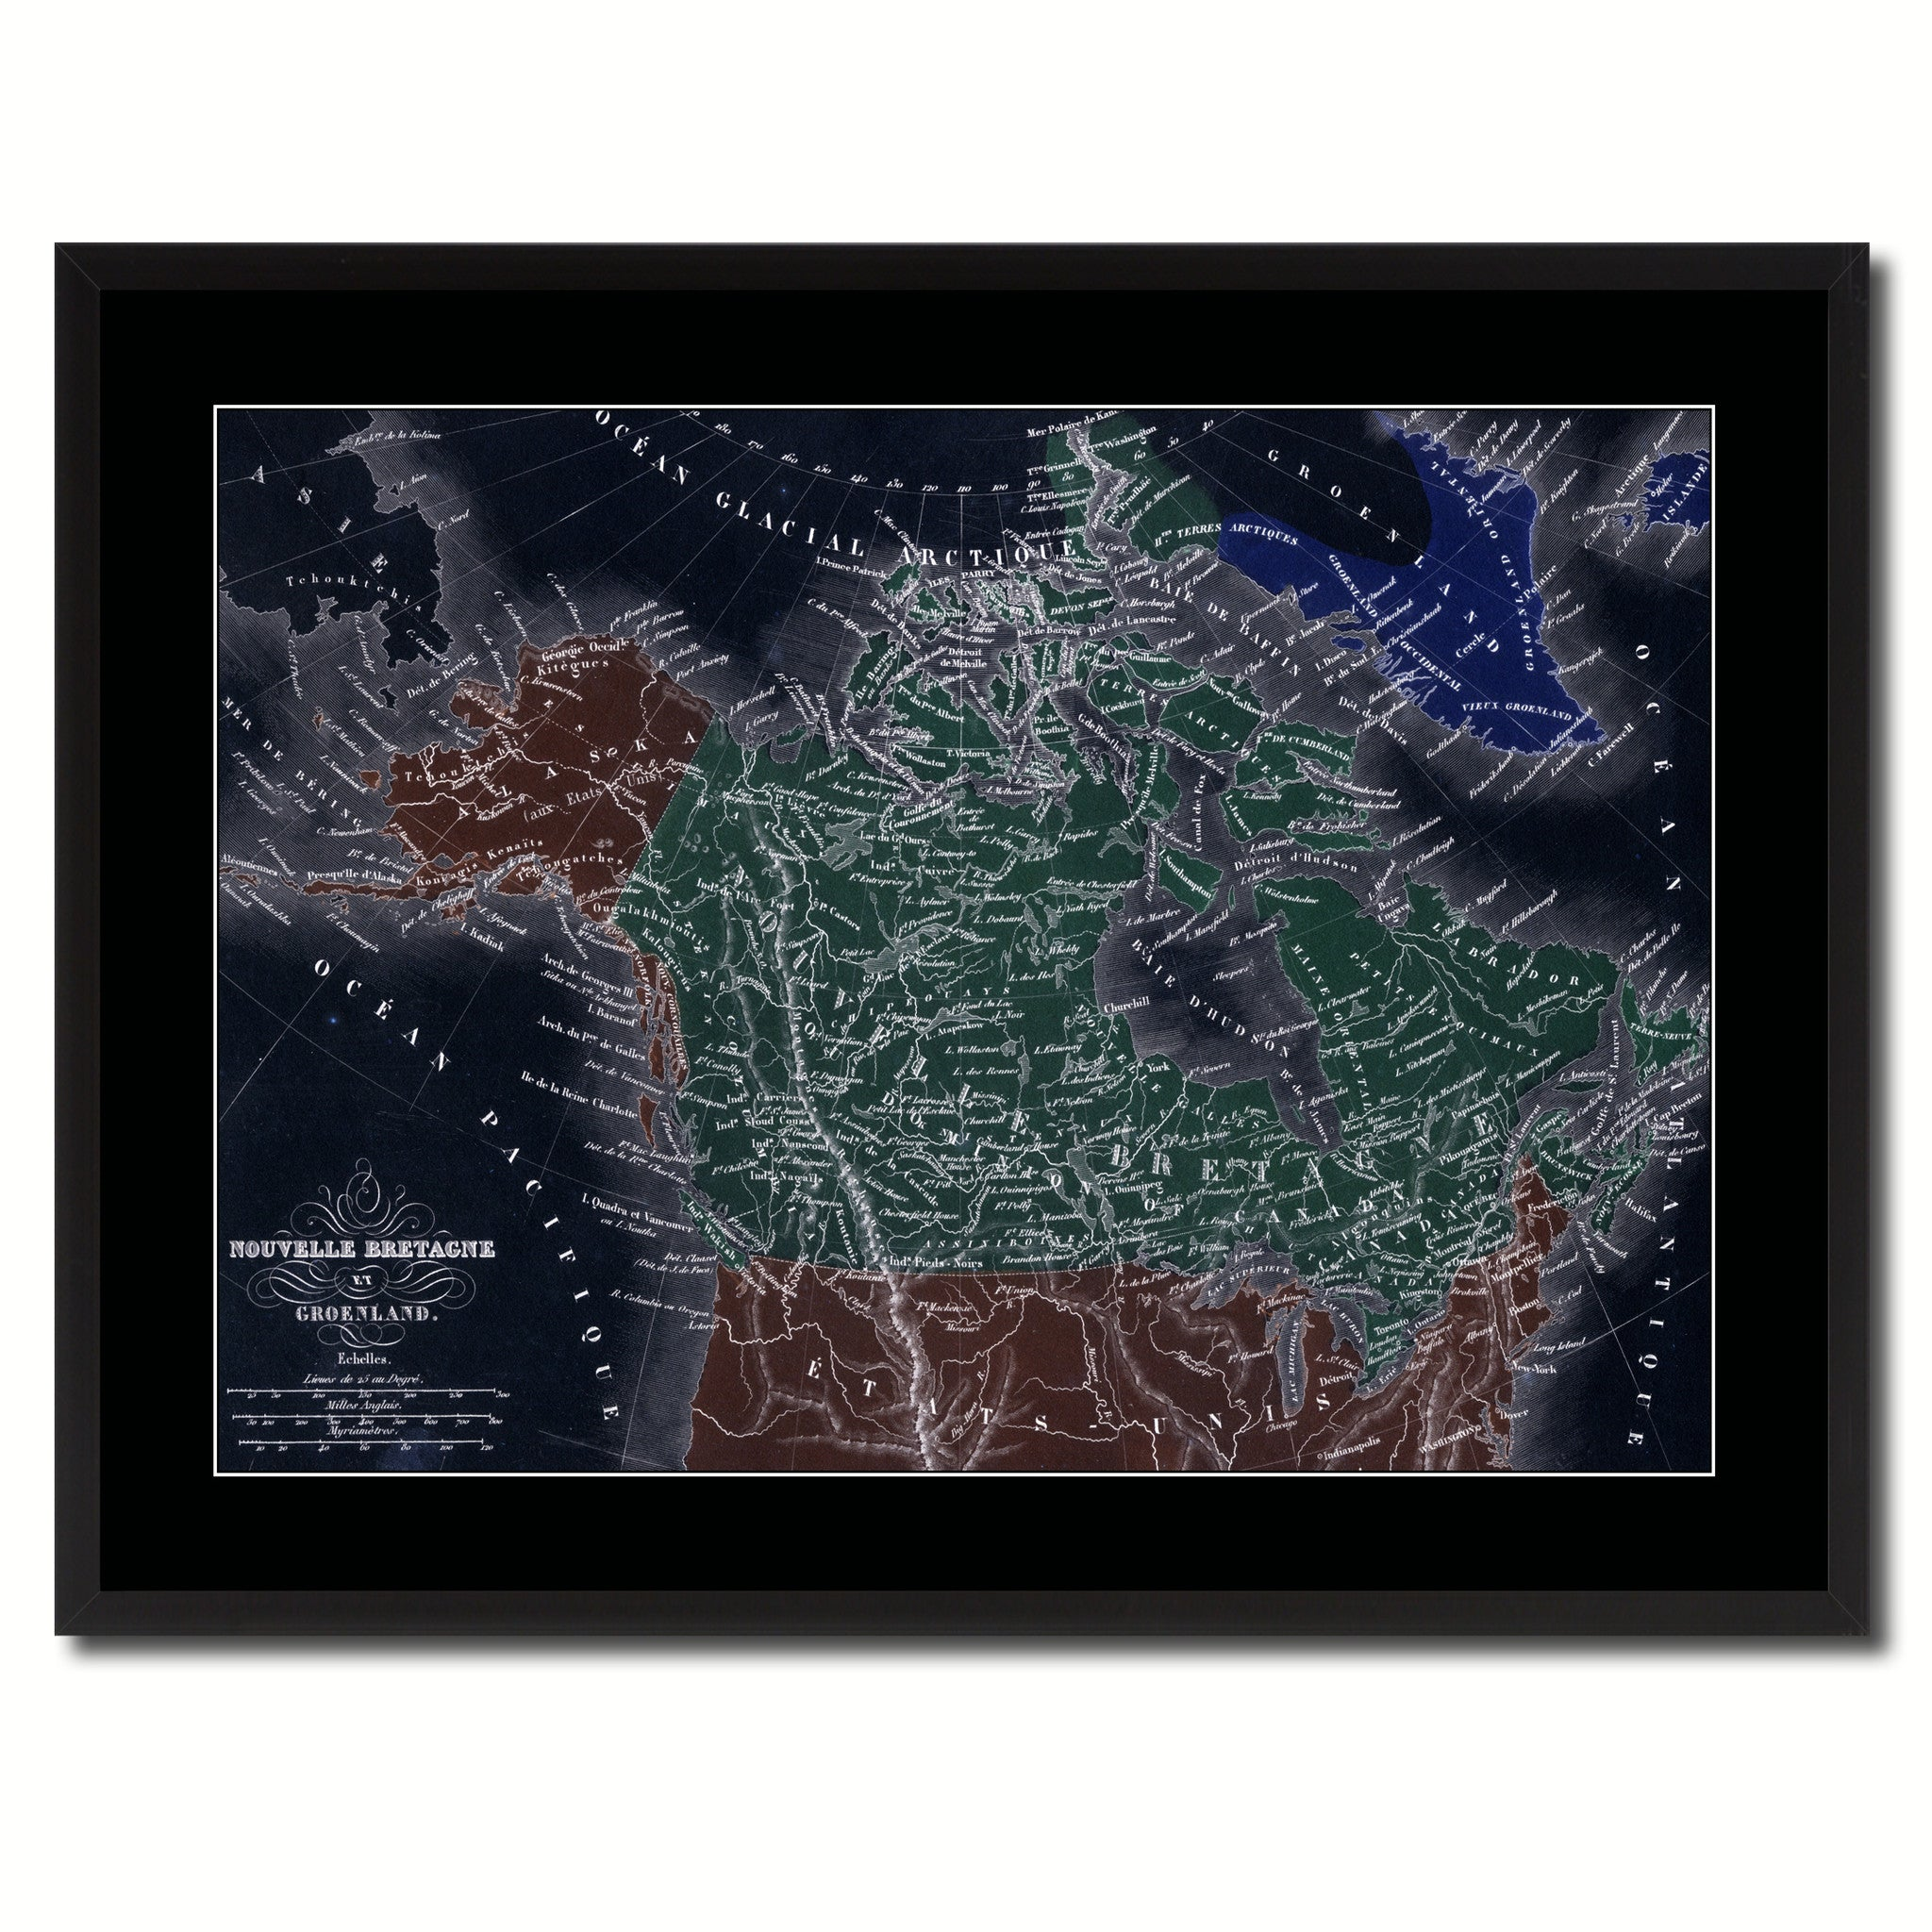 Canada Alaska Vintage Vivid Color Map Canvas Print, Picture Frame Home Decor Wall Art Office Decoration Gift Ideas